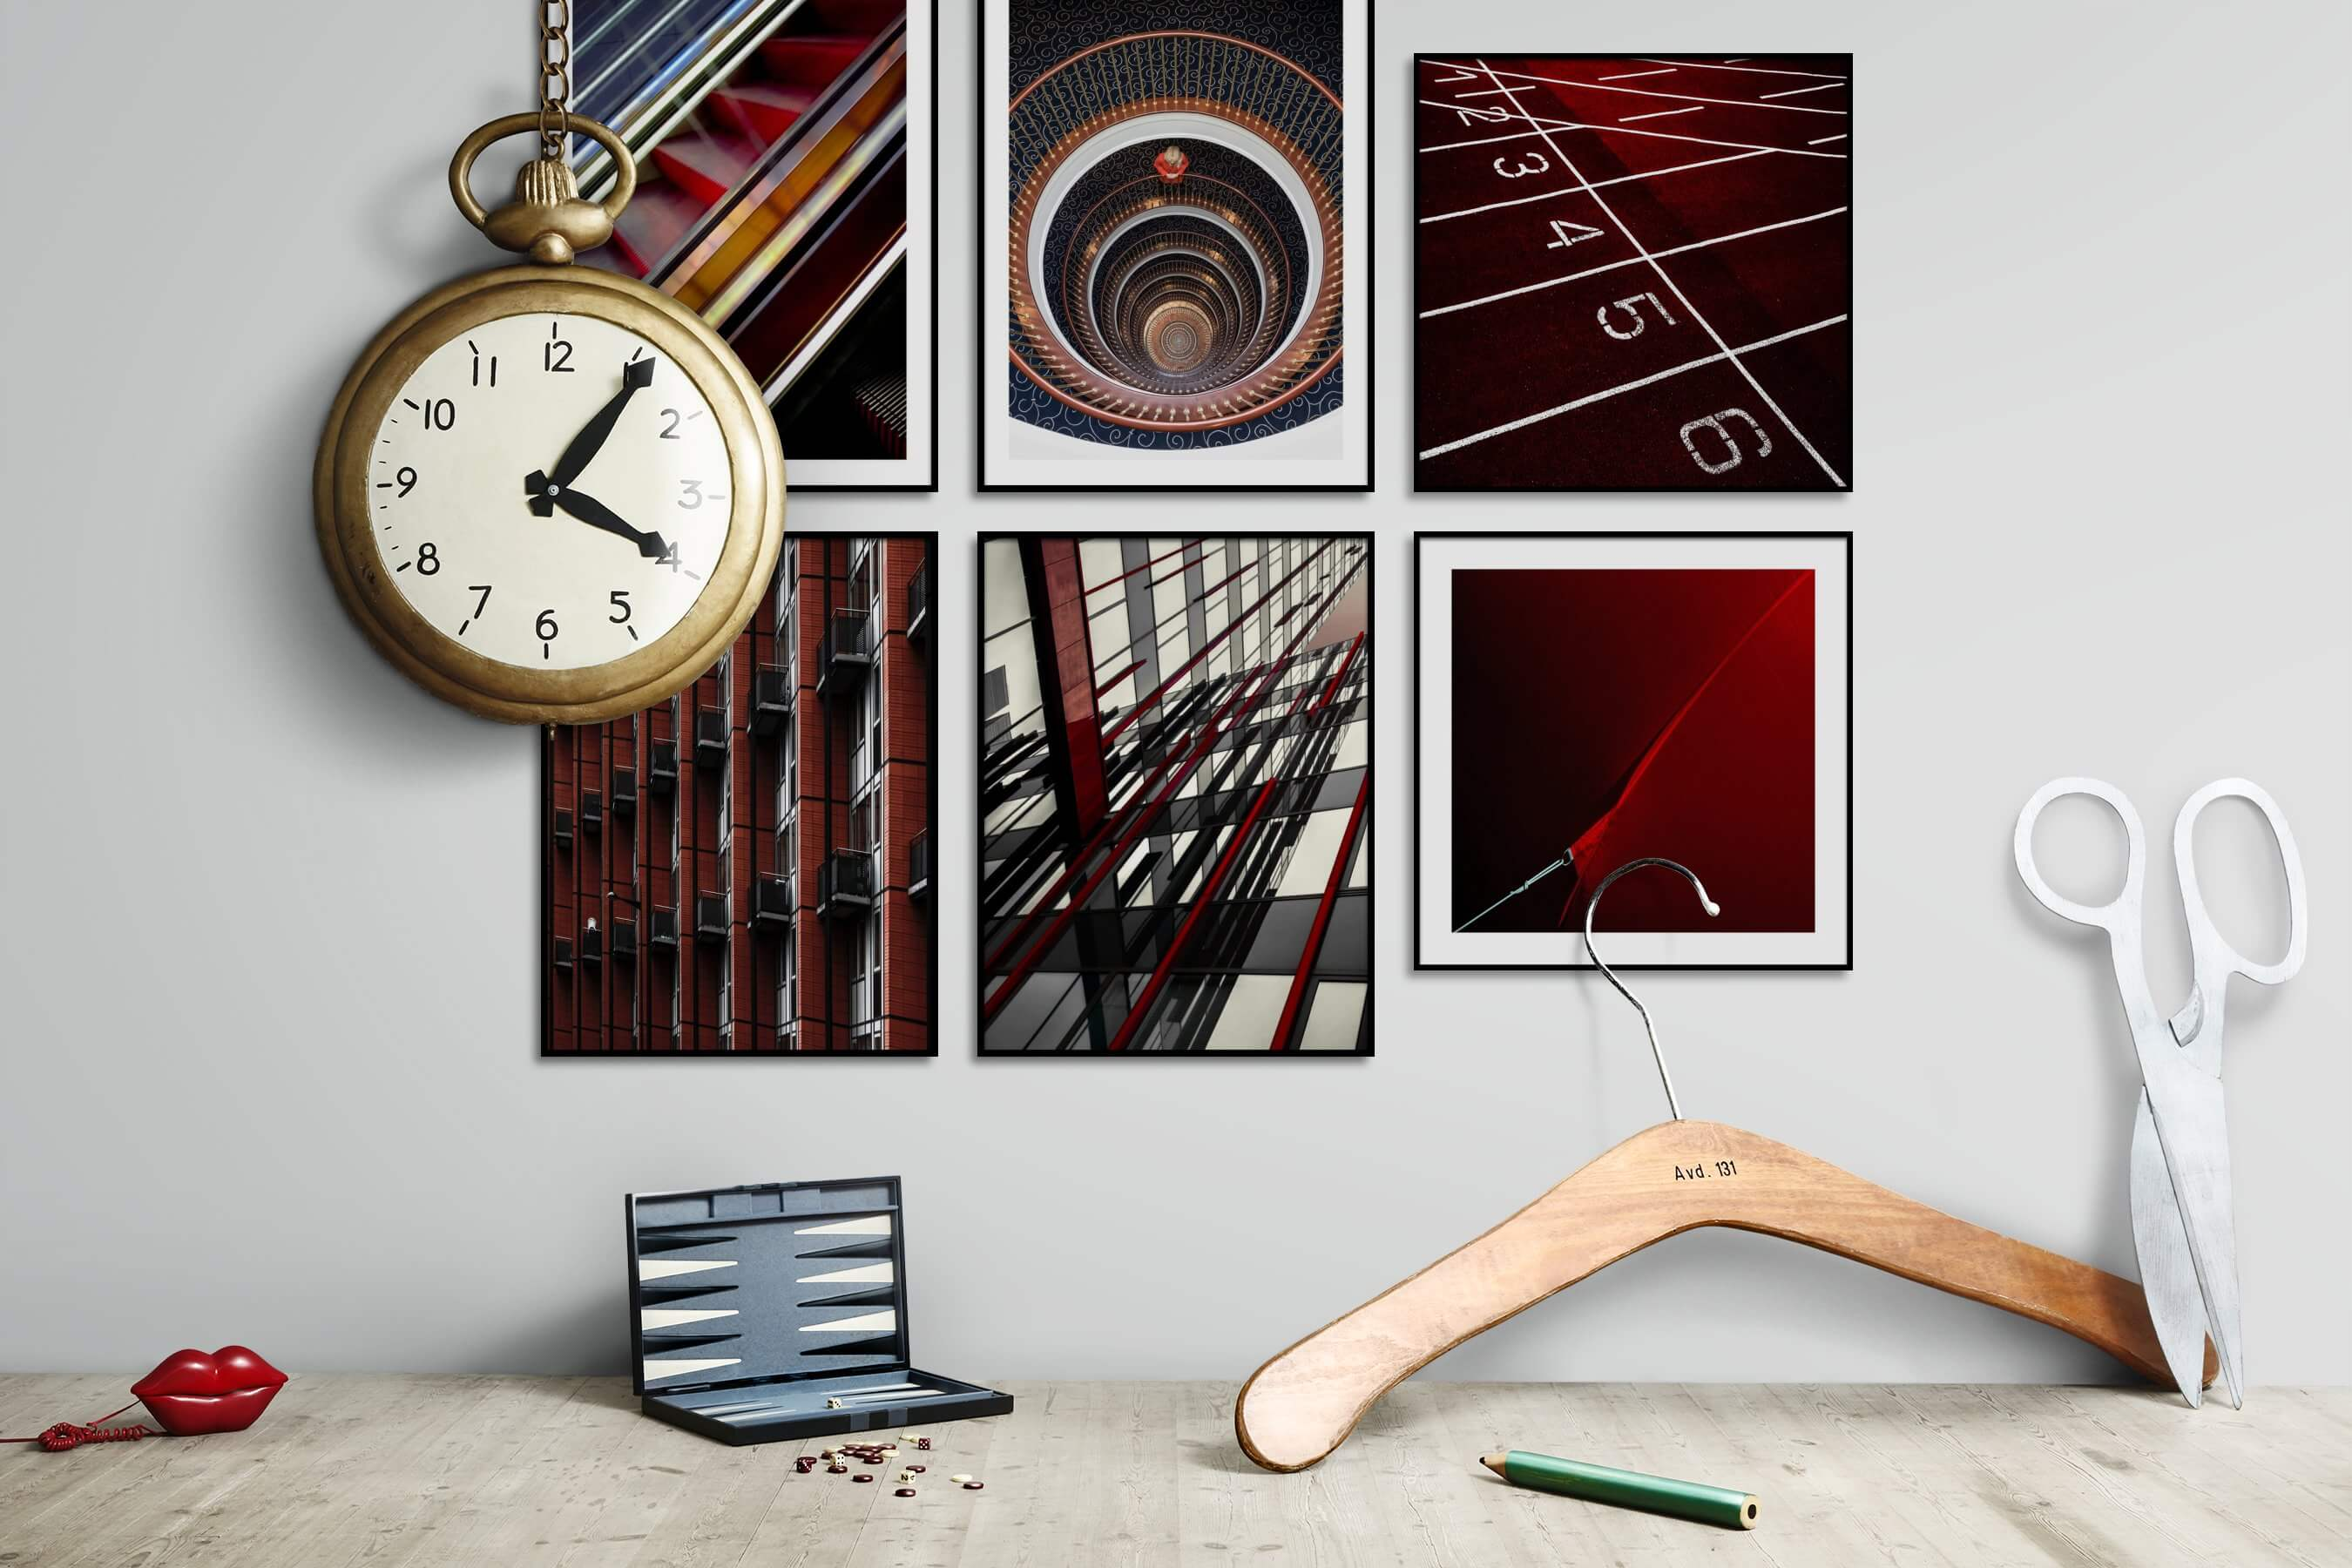 Gallery wall idea with six framed pictures arranged on a wall depicting For the Maximalist, City Life, For the Moderate, and For the Minimalist